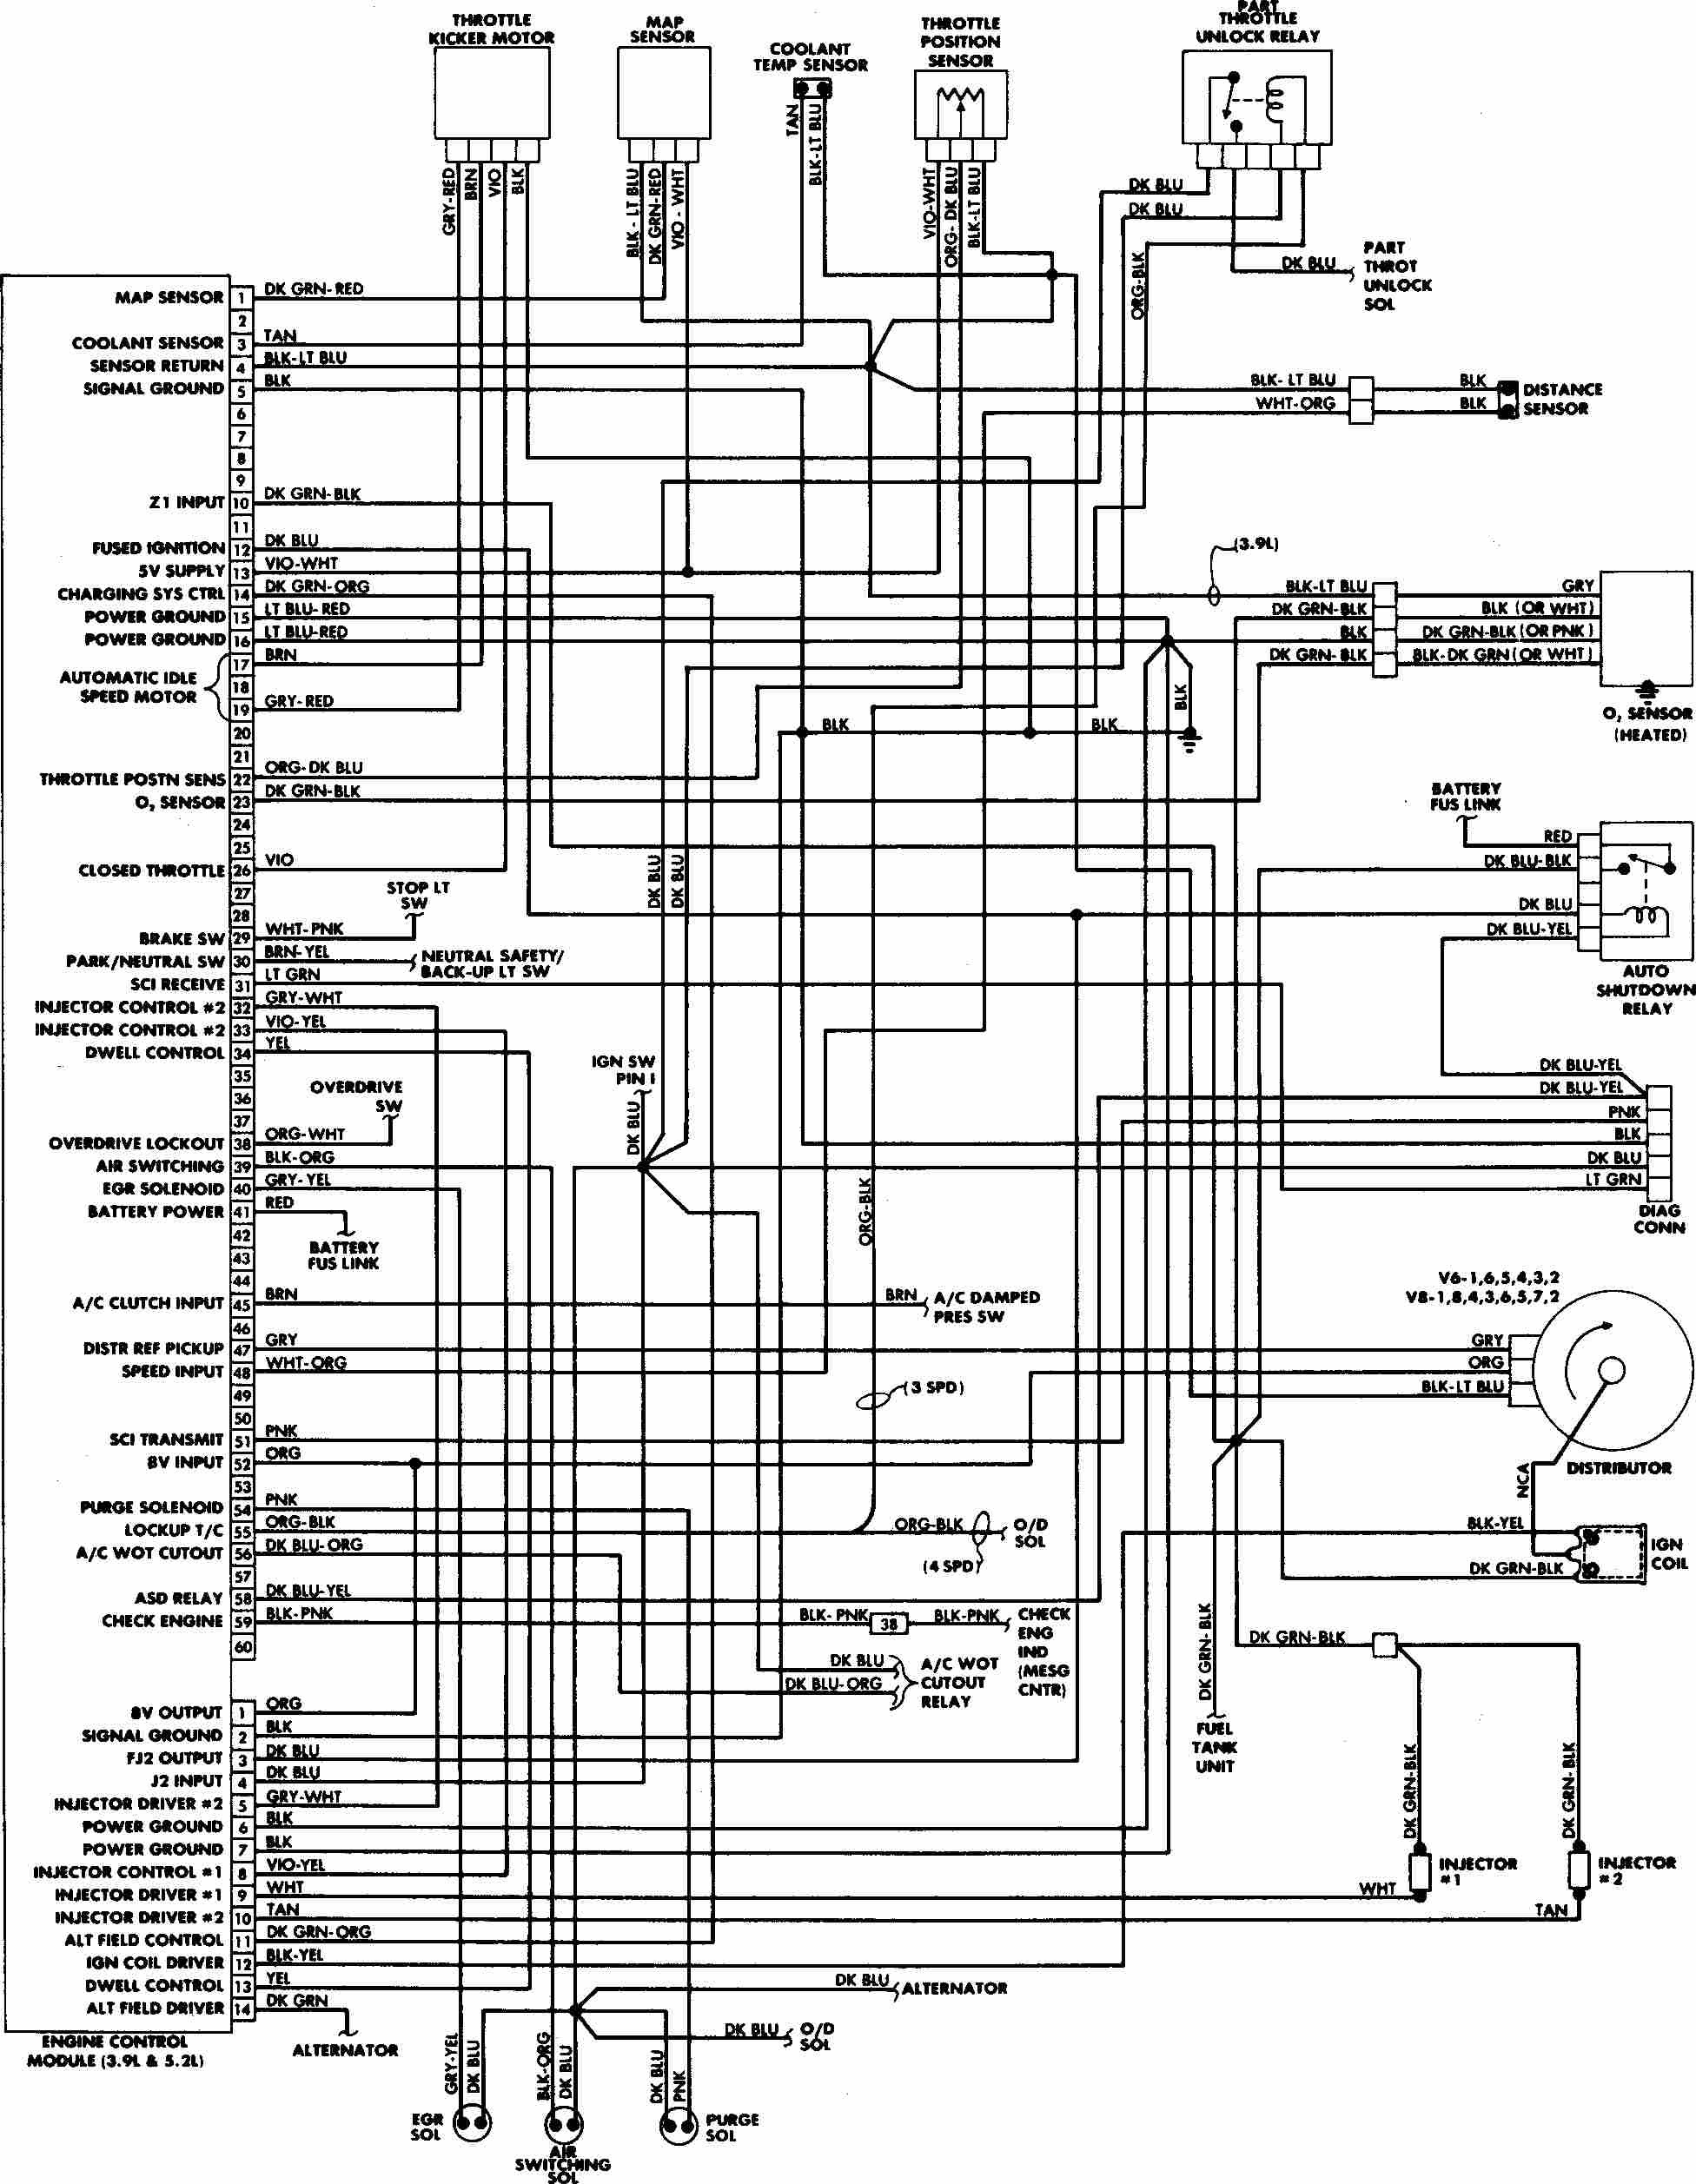 2003 Durango O2 Sensor Diagram Wiring Schematic Not Lossing 2005 Dodge 02 Fuse Box Library Rh 44 Evitta De Dakota Wideband